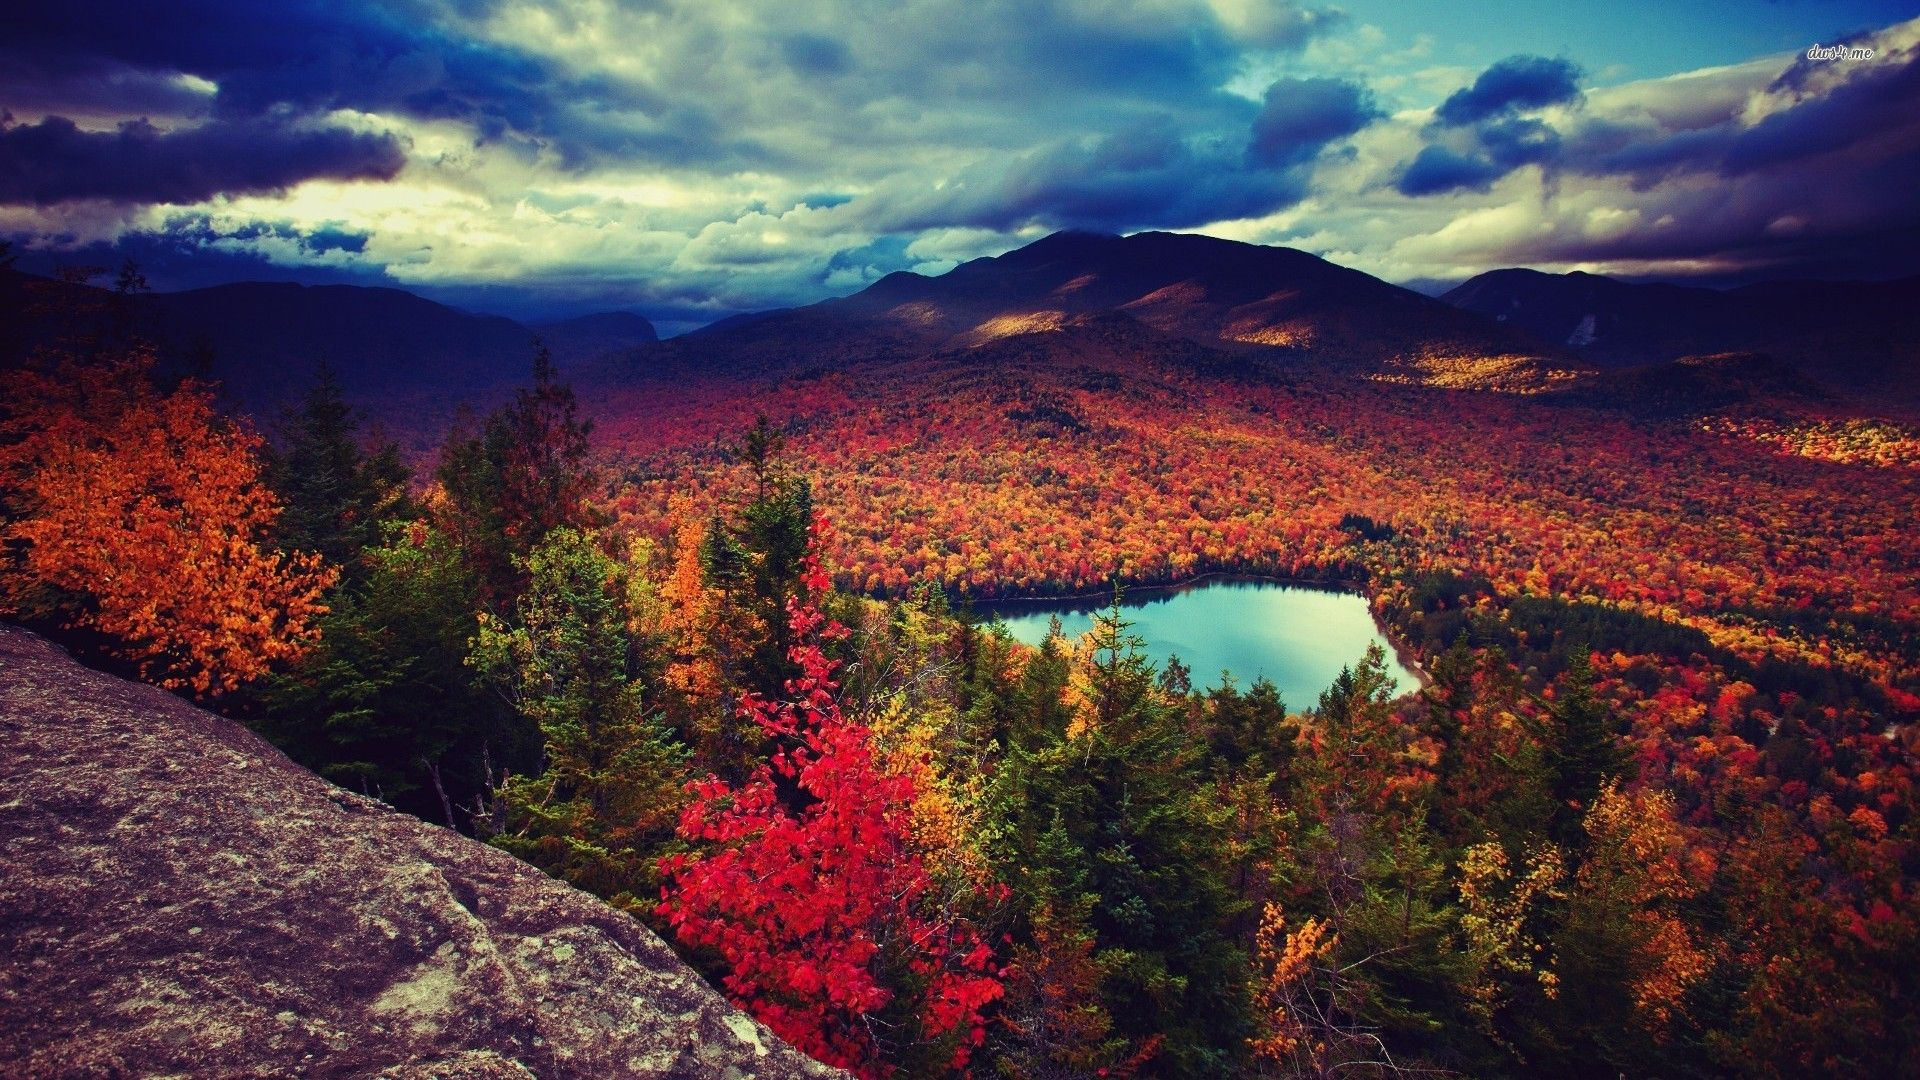 High Resolution Fall Wallpaper: Fall Mountain Wallpapers Desktop Background With Wallpaper